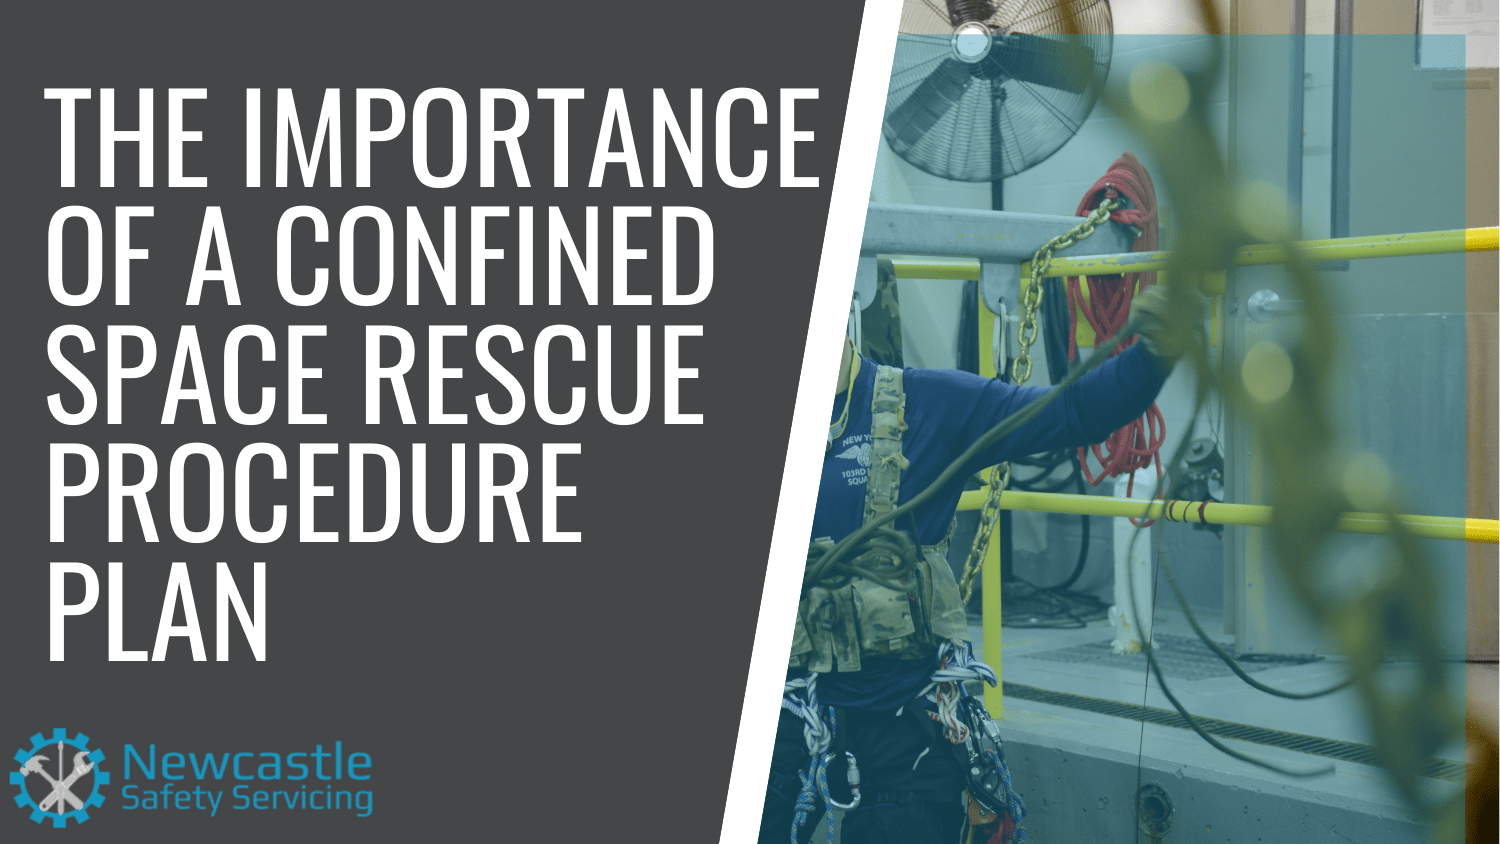 Confined Space Rescue Cover Image